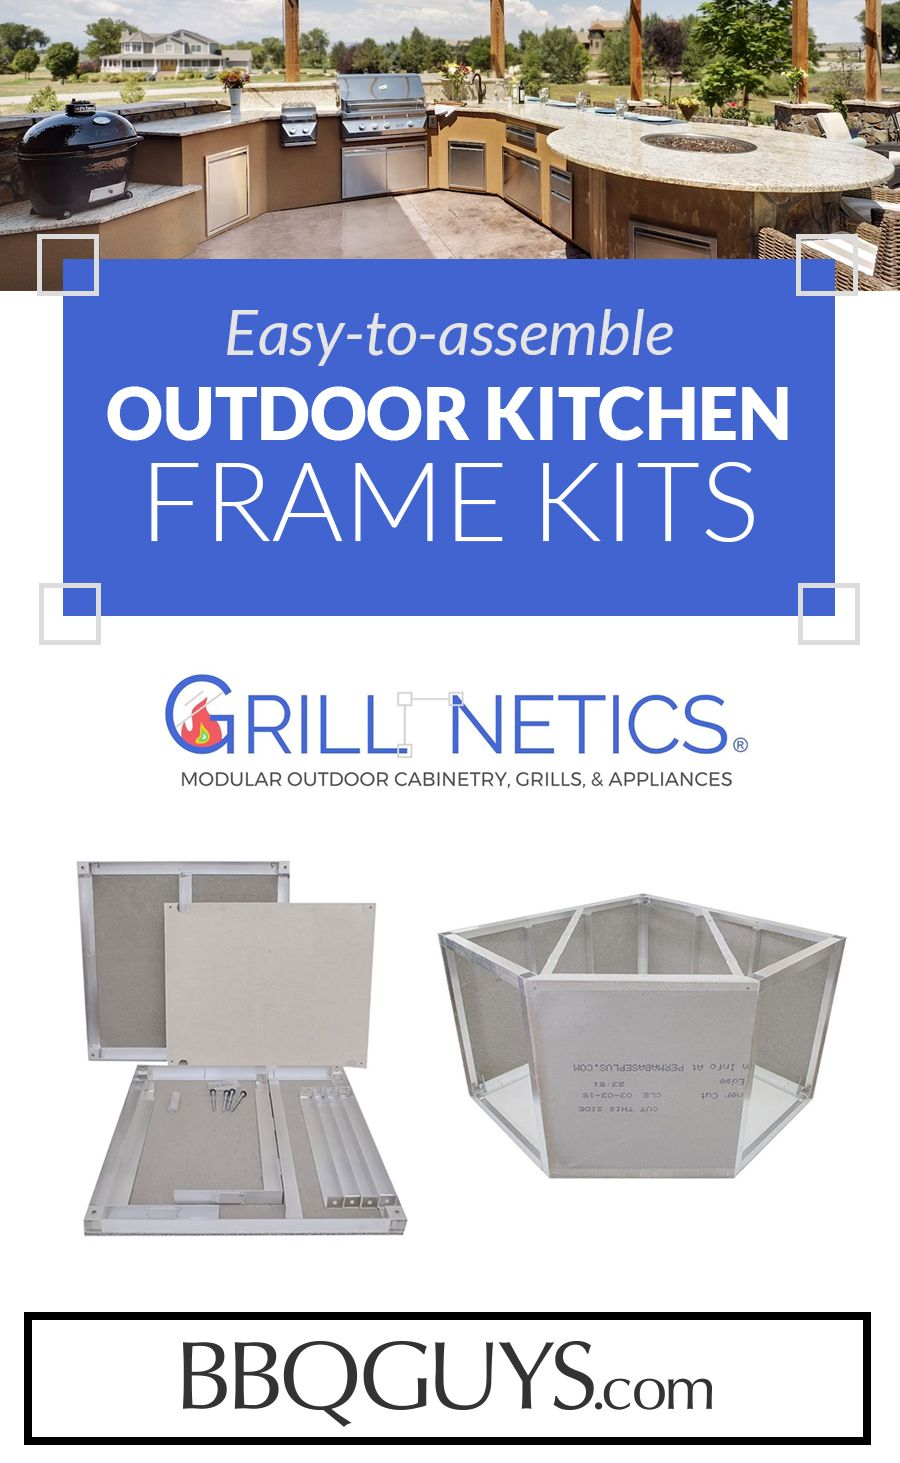 Diy The Outdoor Kitchen You Ve Always Wanted With Grillnetics A Wide Array Of Easy To Attach Outdoor Kitchen Frame Kits Mix And Match Modular Outdoor Kitchens Outdoor Kitchen Design Bbq